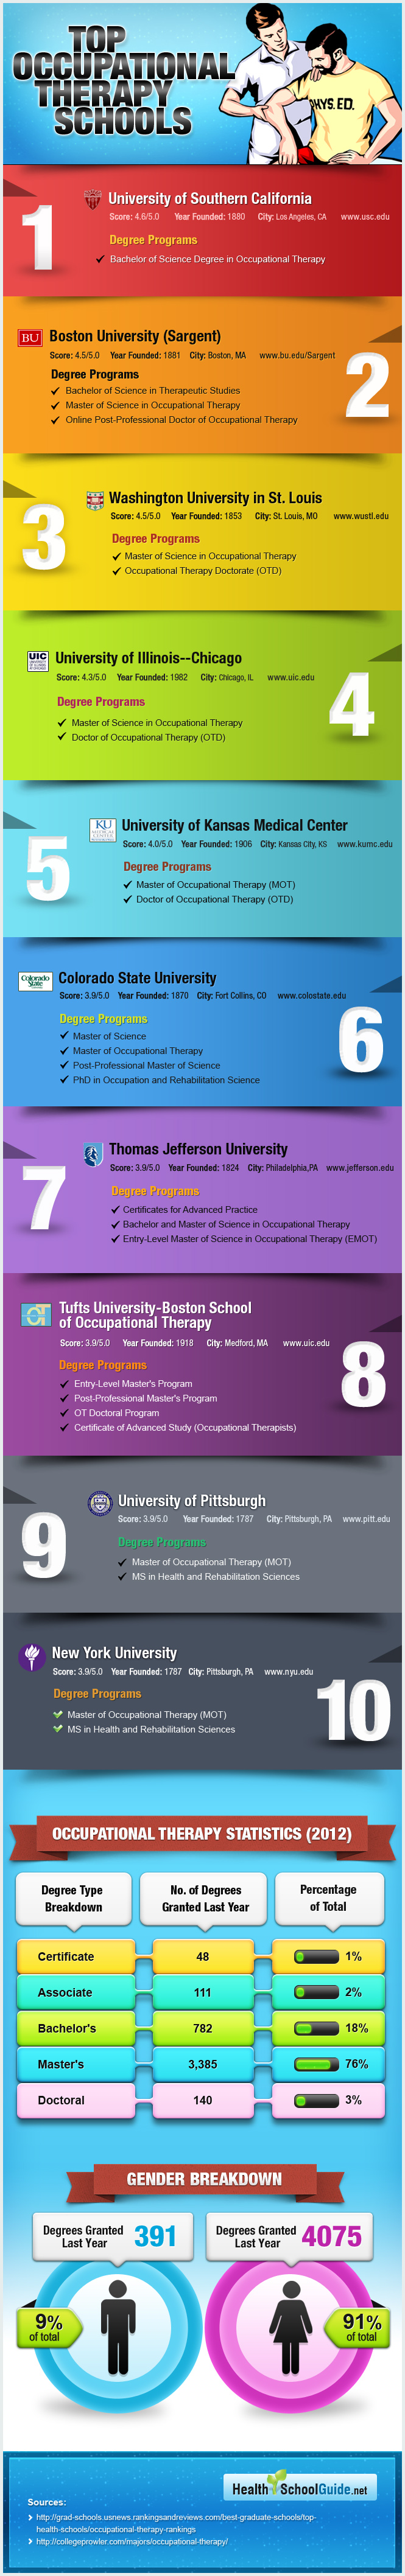 occupational therapy rankings